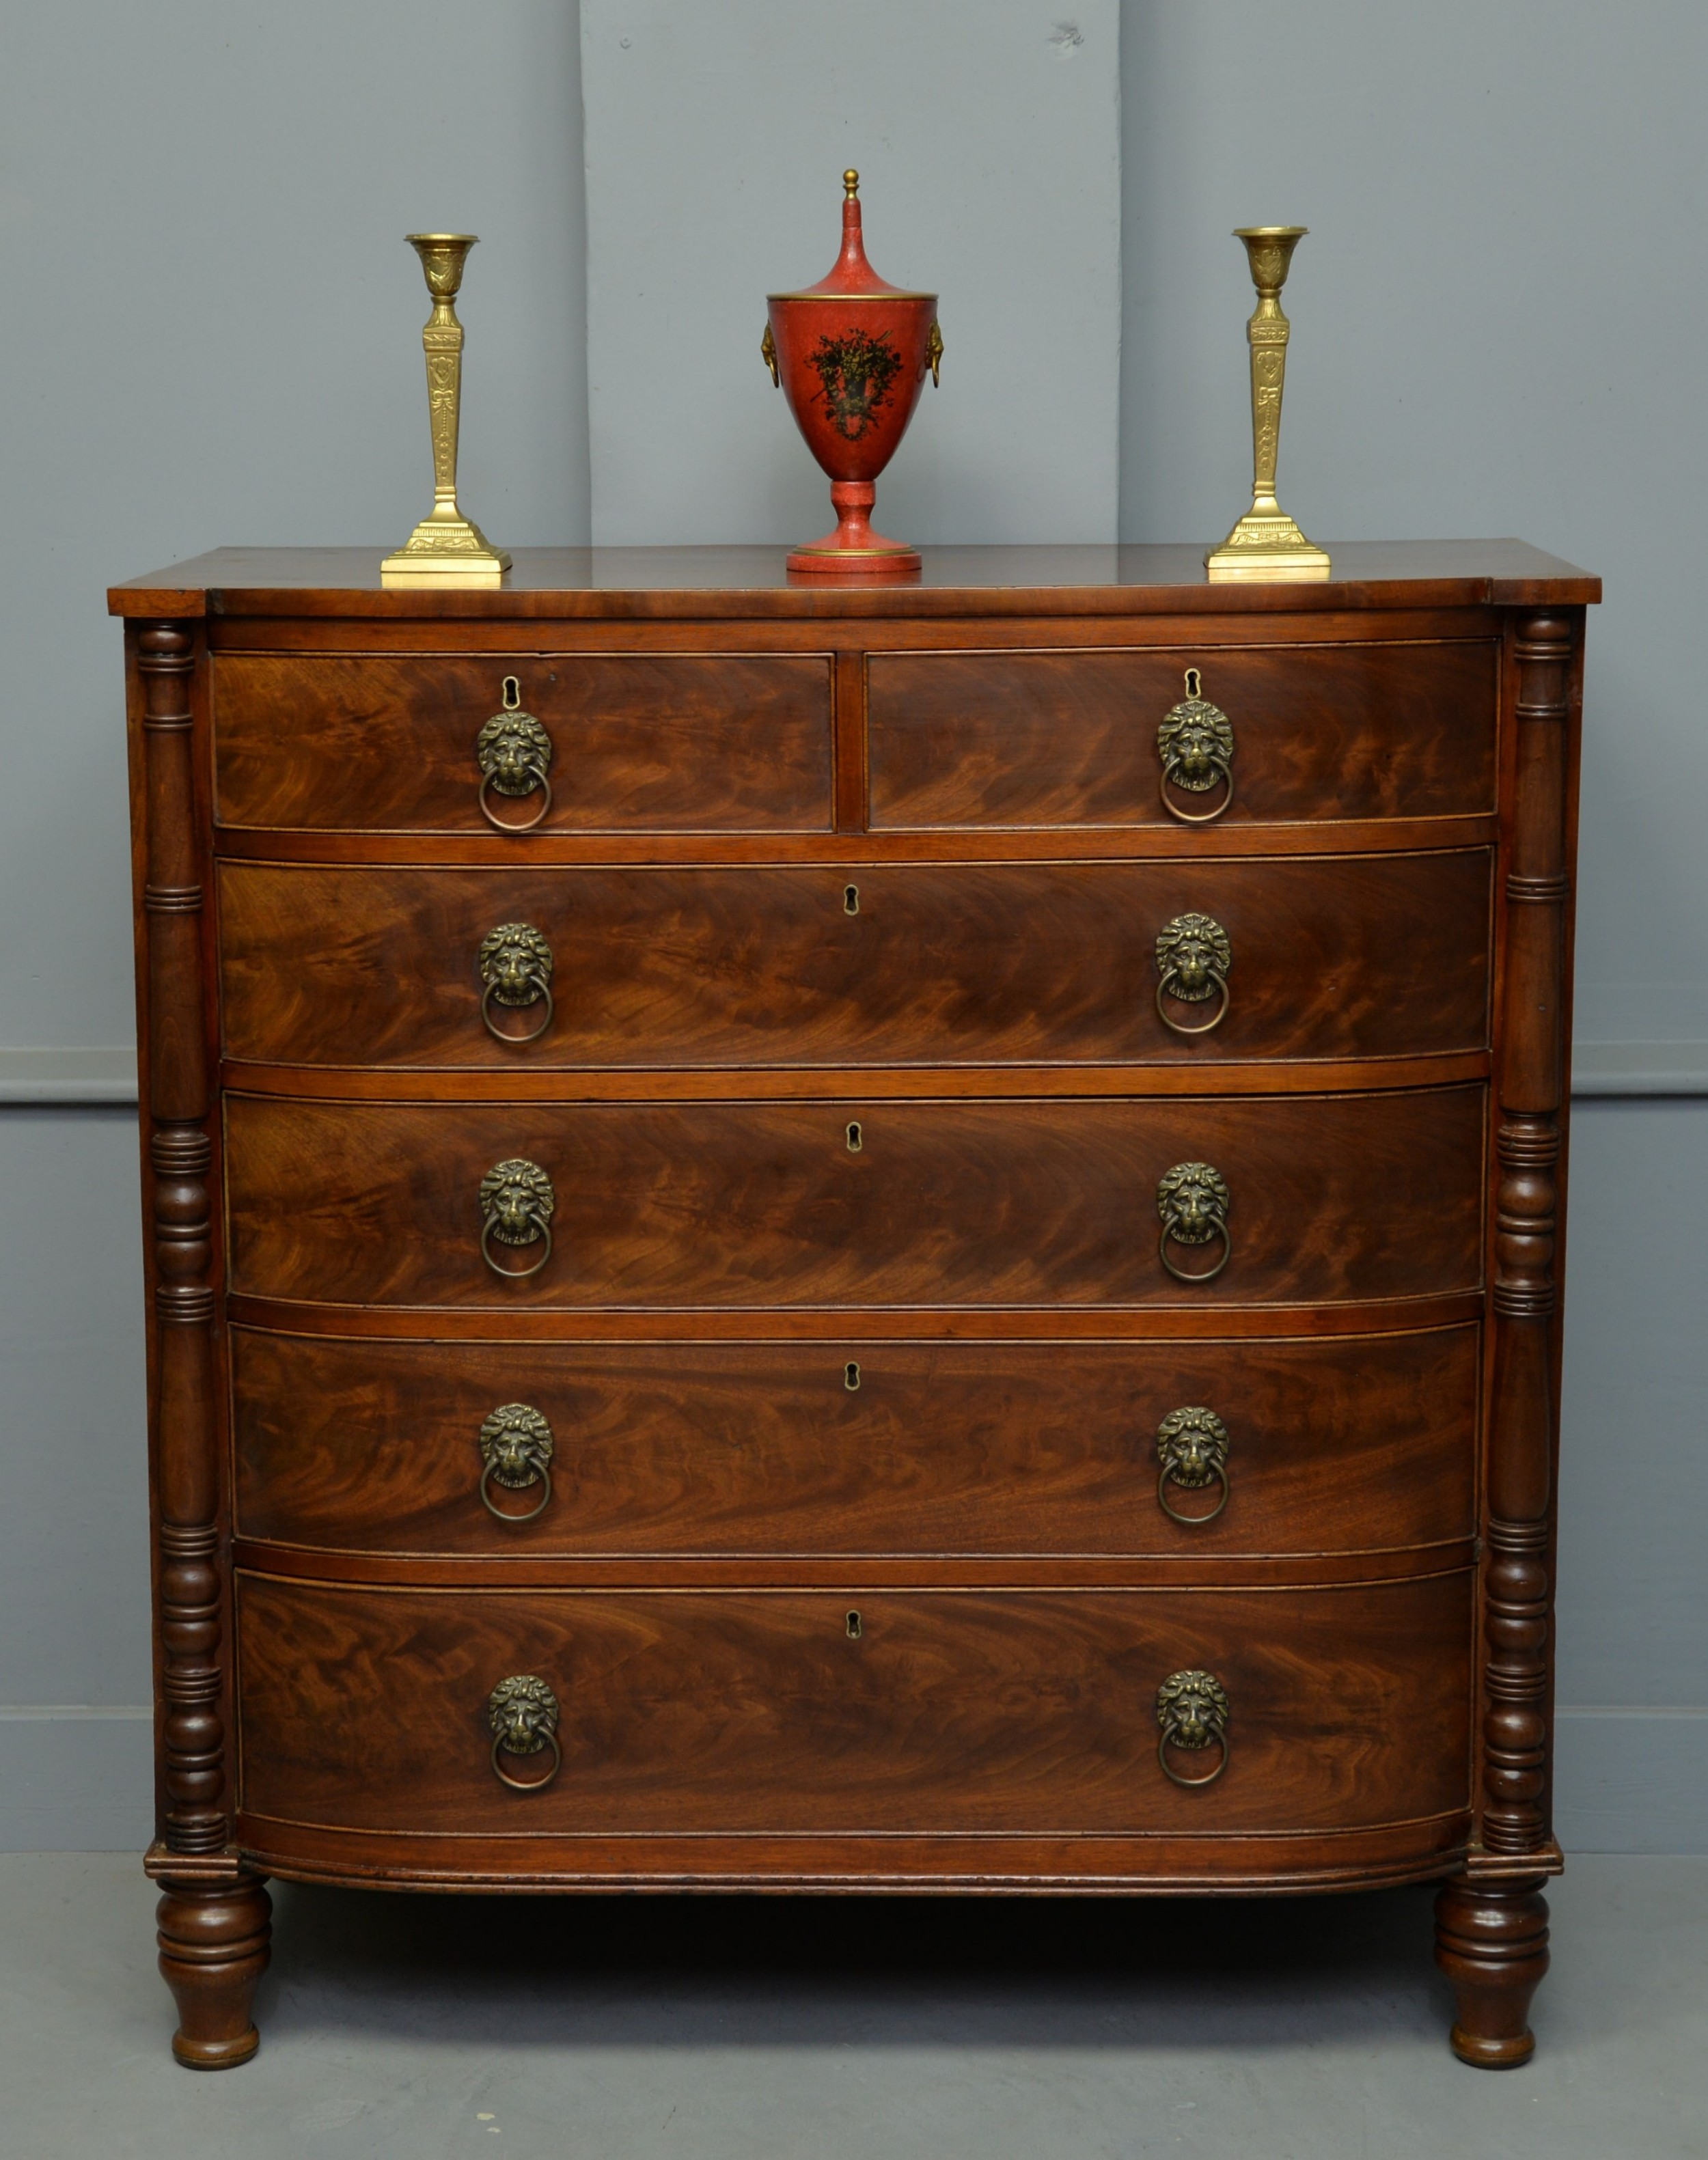 handsome regency mahogany dshaped bowfront chest of drawers